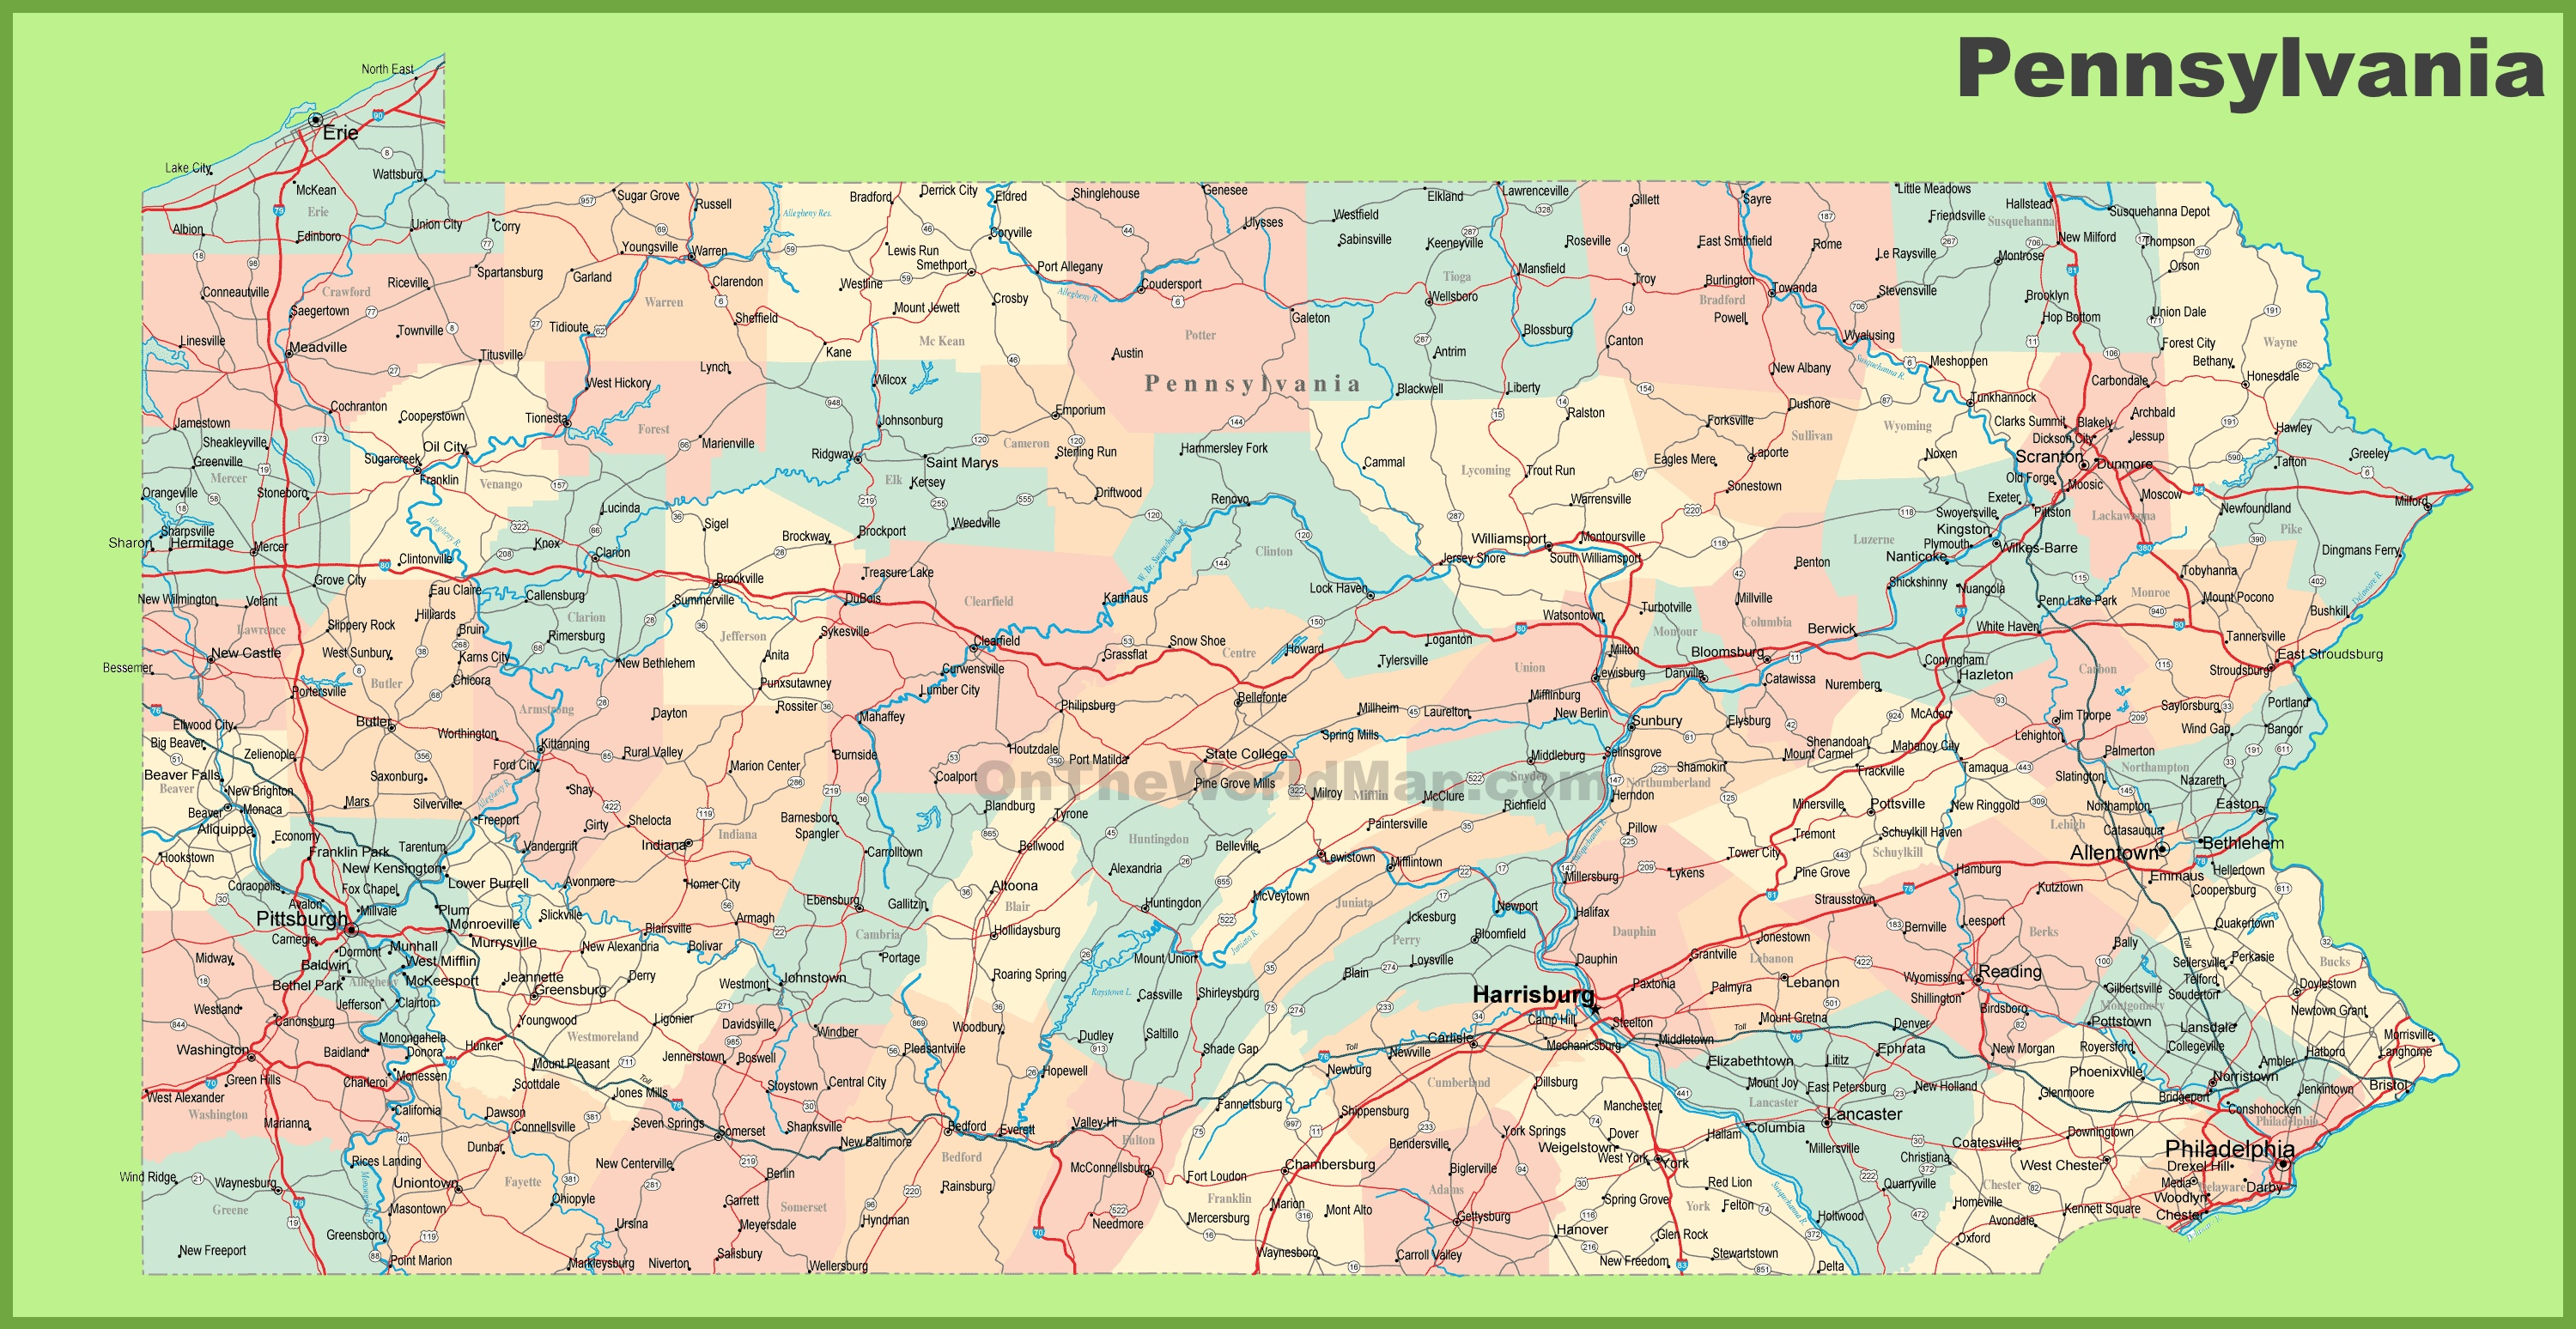 Pennsylvania Map With Cities Missouri Map - Missouri state map with cities